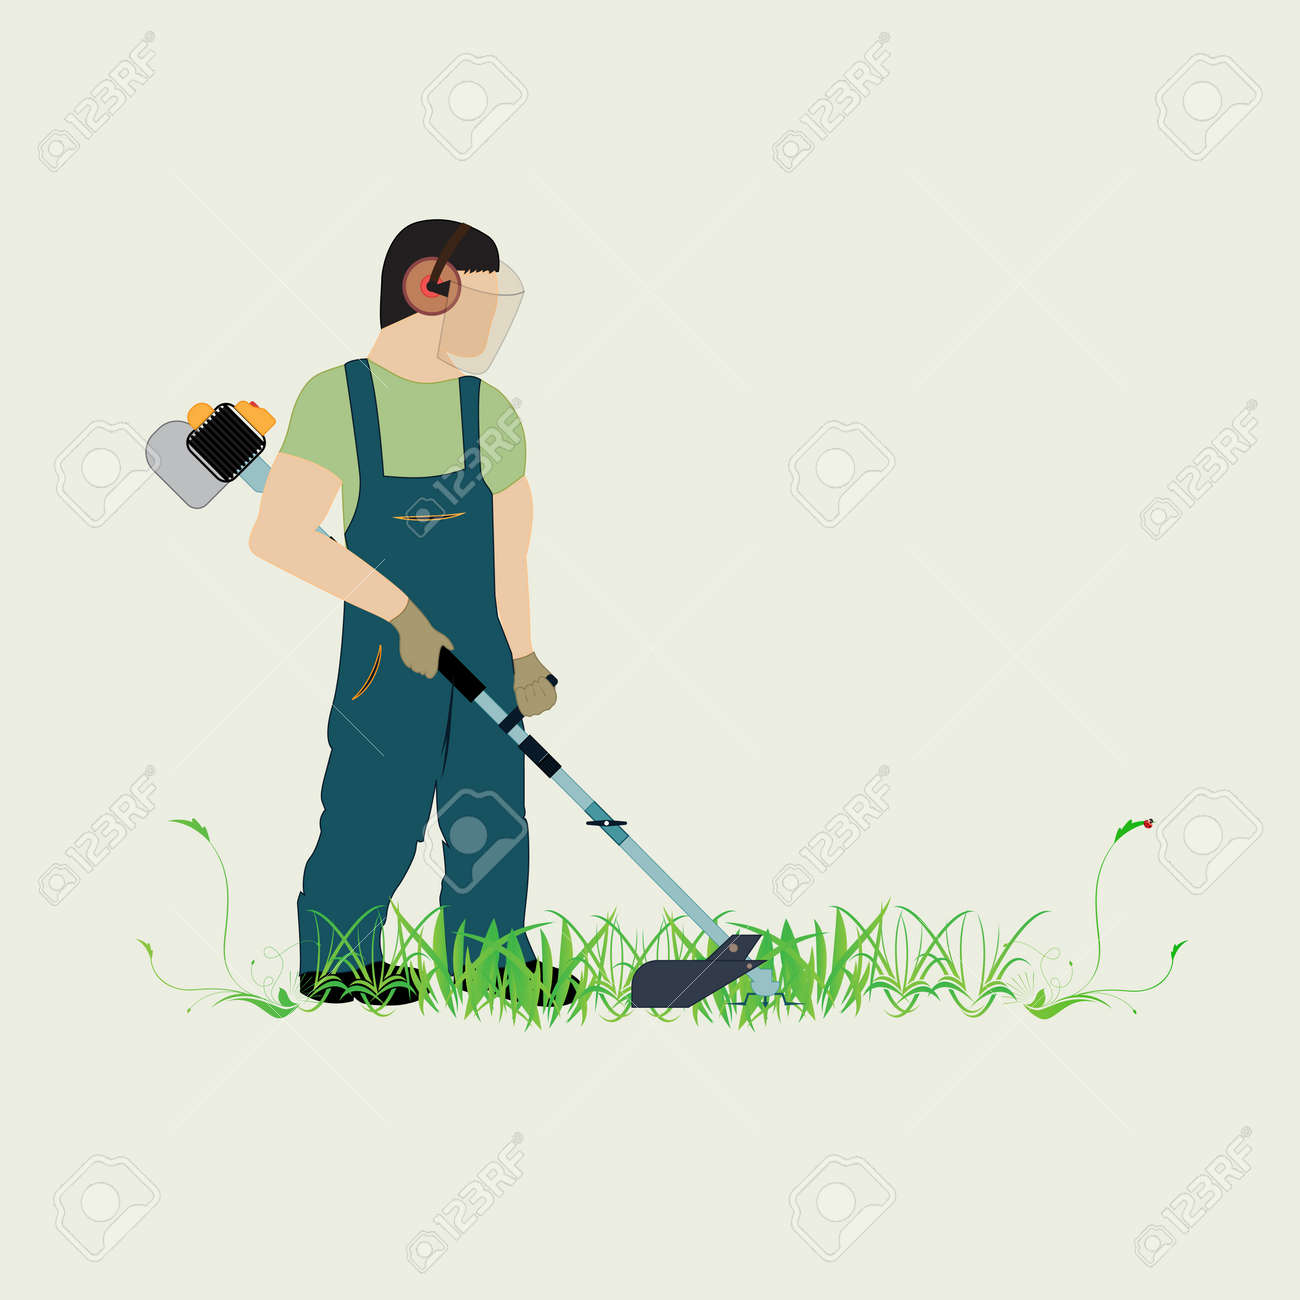 A man with a trimmer cuts grass on a white background. A man in overalls cuts grass with a trimmer. Worker cutting grass in garden with the weed trimmer. - 102004566